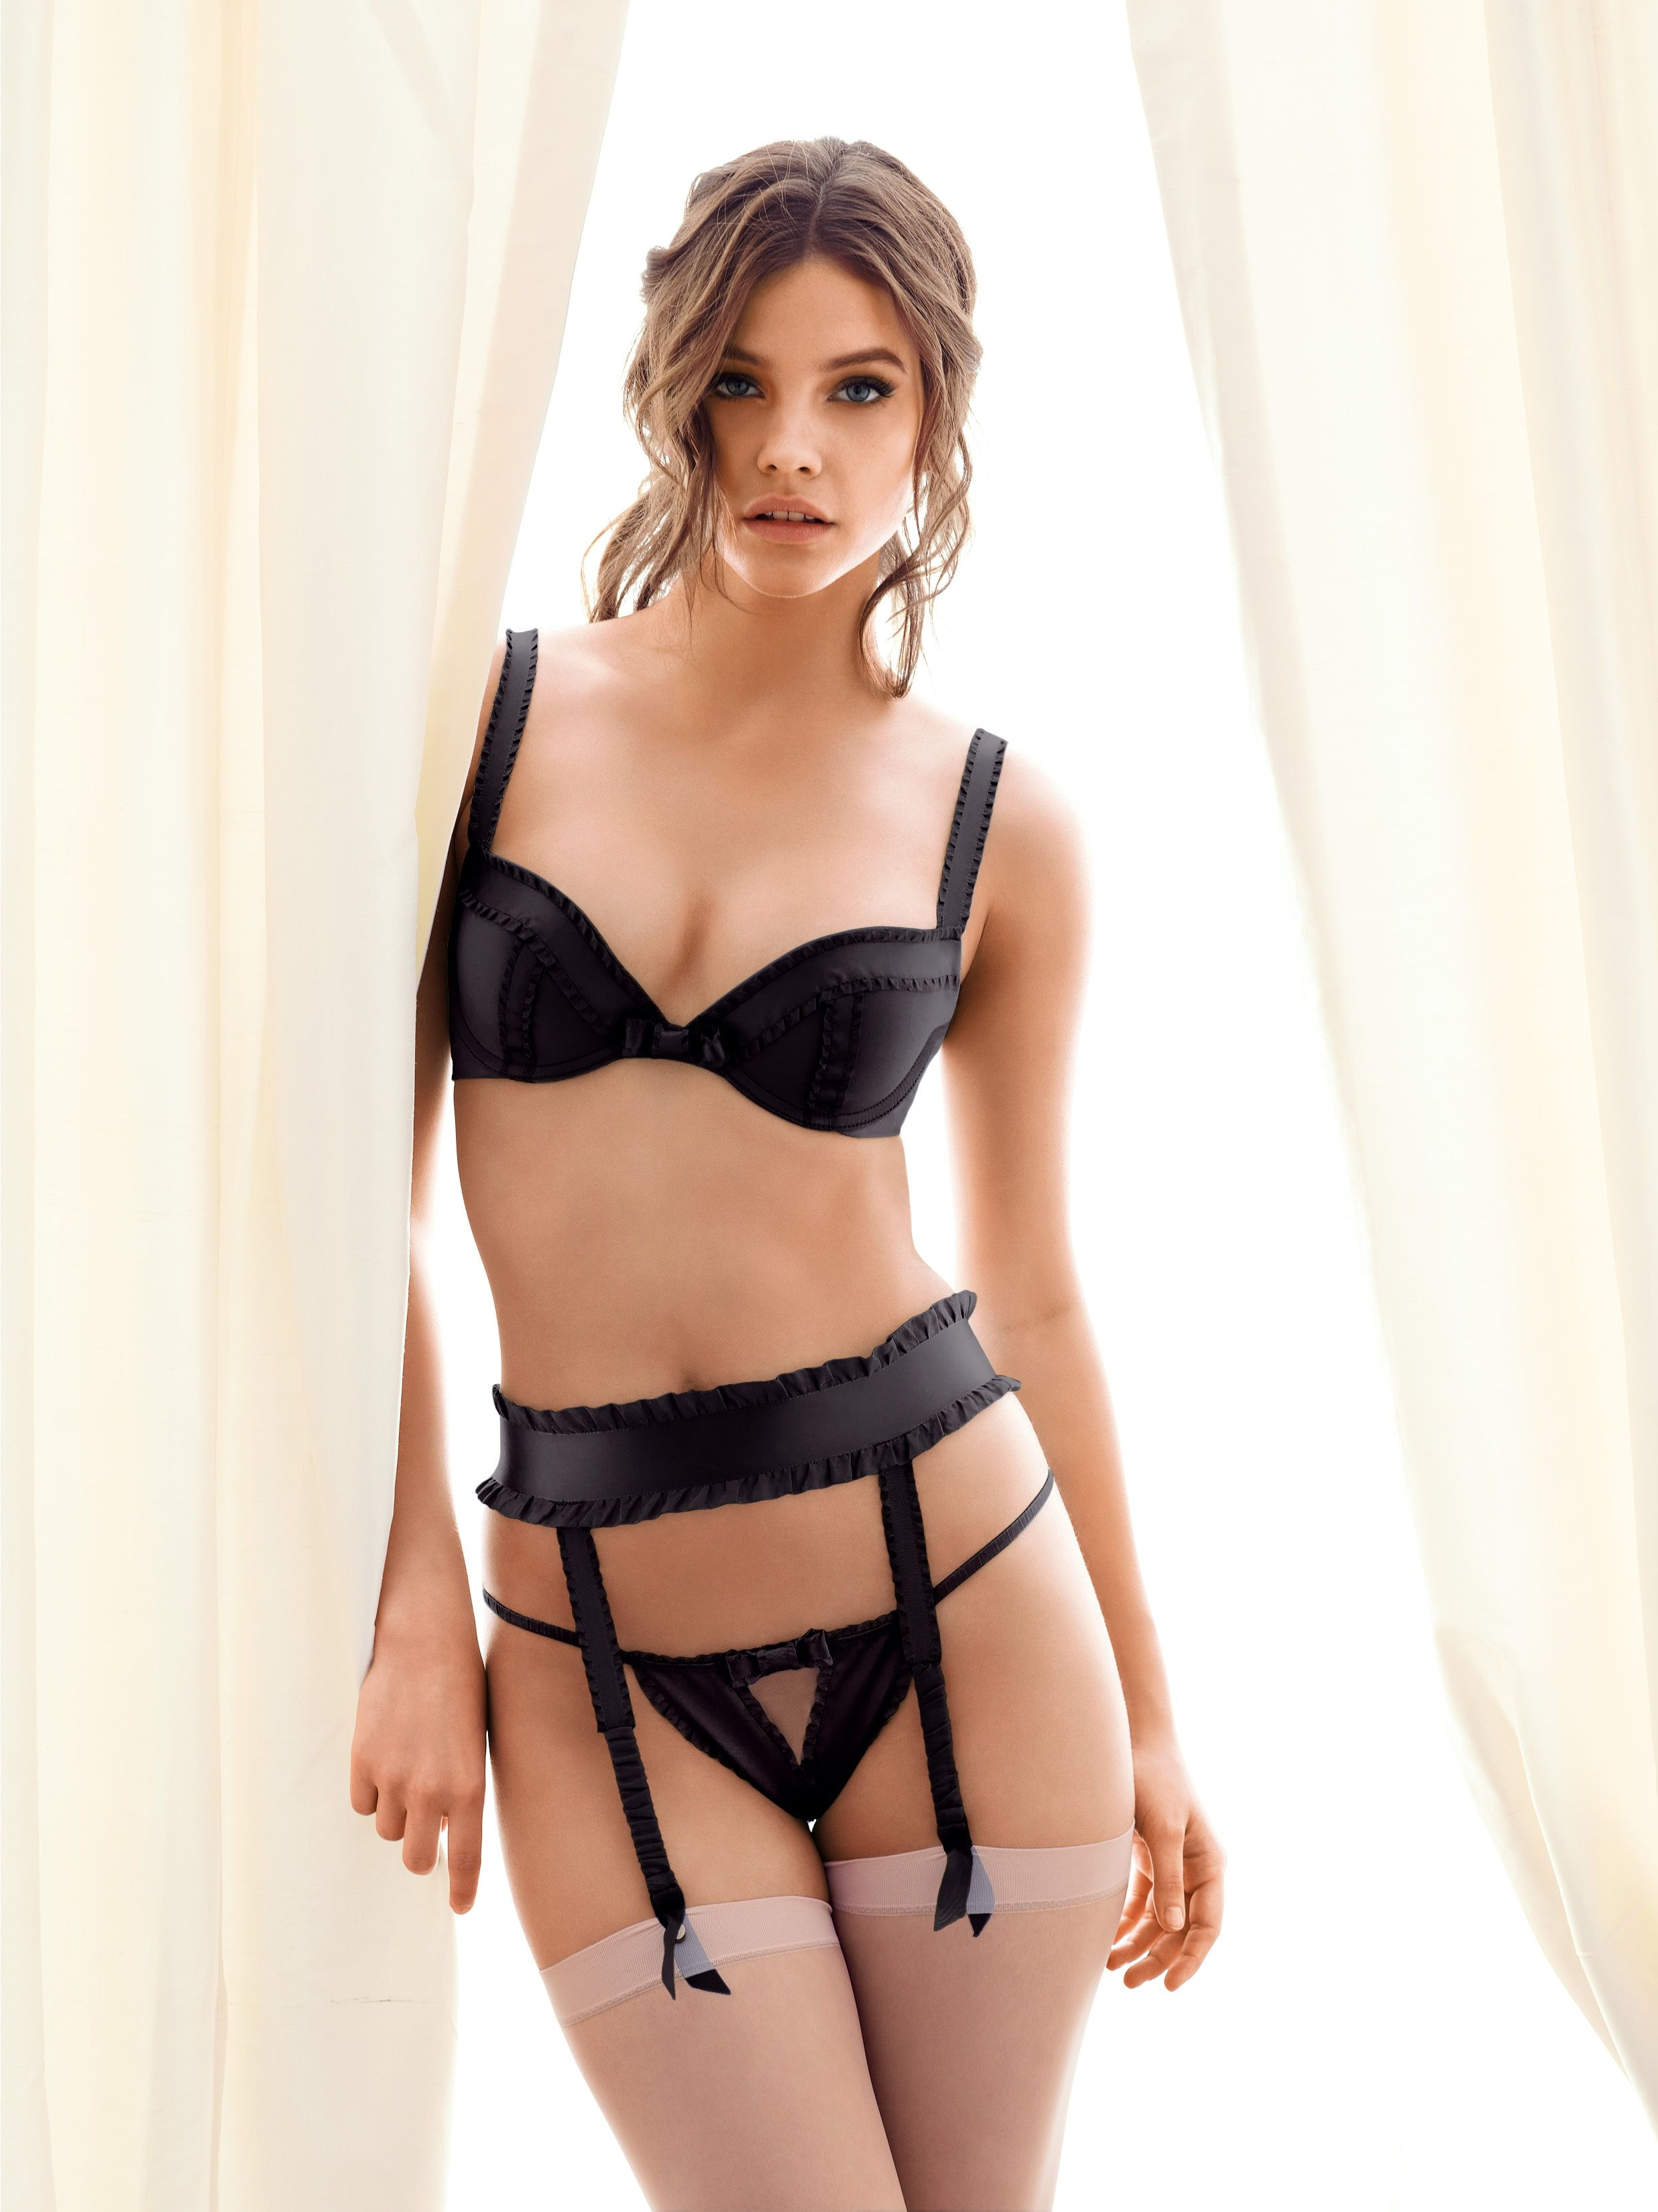 Barbara Palvin Hot in Lingerie